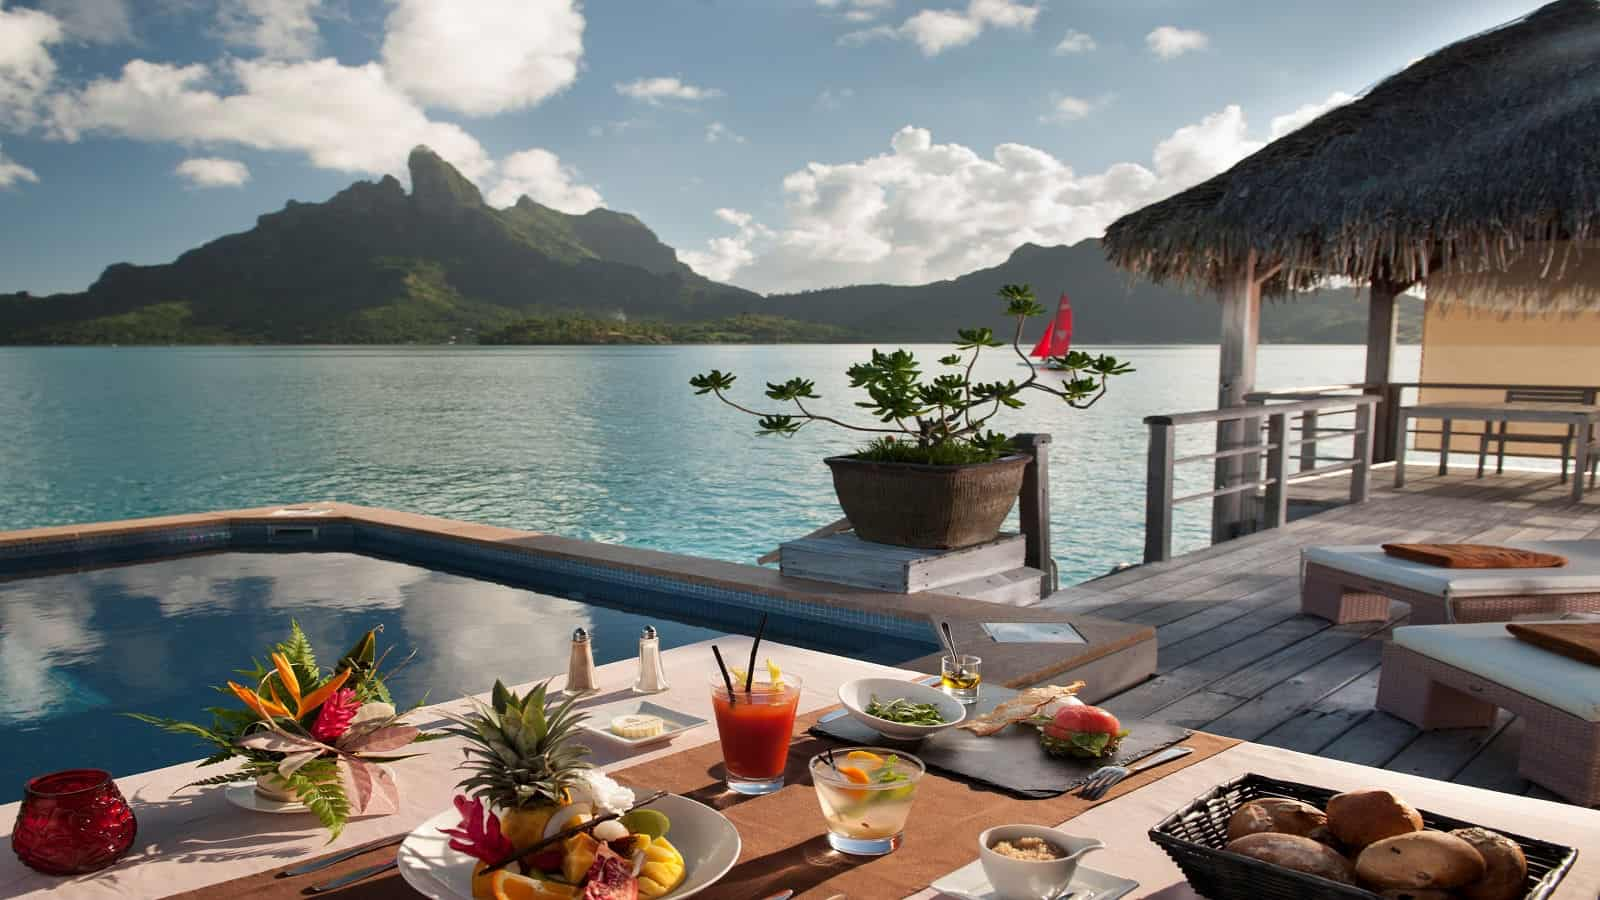 Bora Bora Garden Pool Villa The St. Regis Bora Bora Resort | Gay Holidays & Vacations